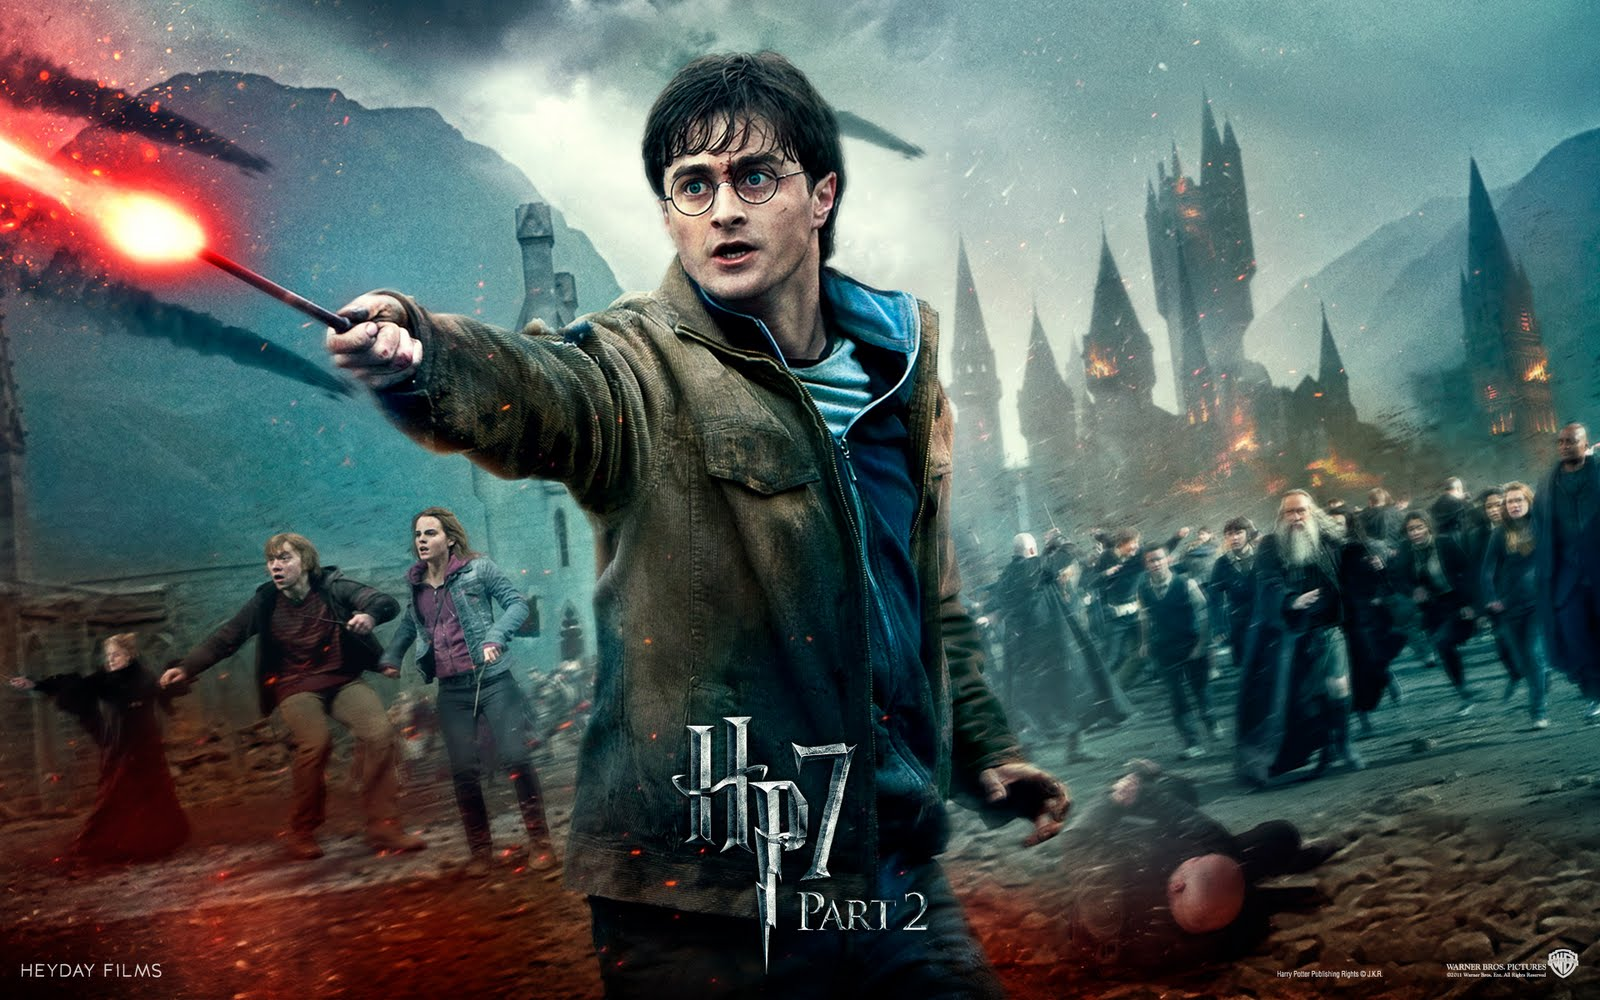 http://1.bp.blogspot.com/-dhM-sXwM4FA/TiFPphWf5xI/AAAAAAAAAAw/J6sbIyfX3_k/s1600/Harry-Potter-and-The-Deathly-Hallows-Part-2-Wallpapers-3.jpg